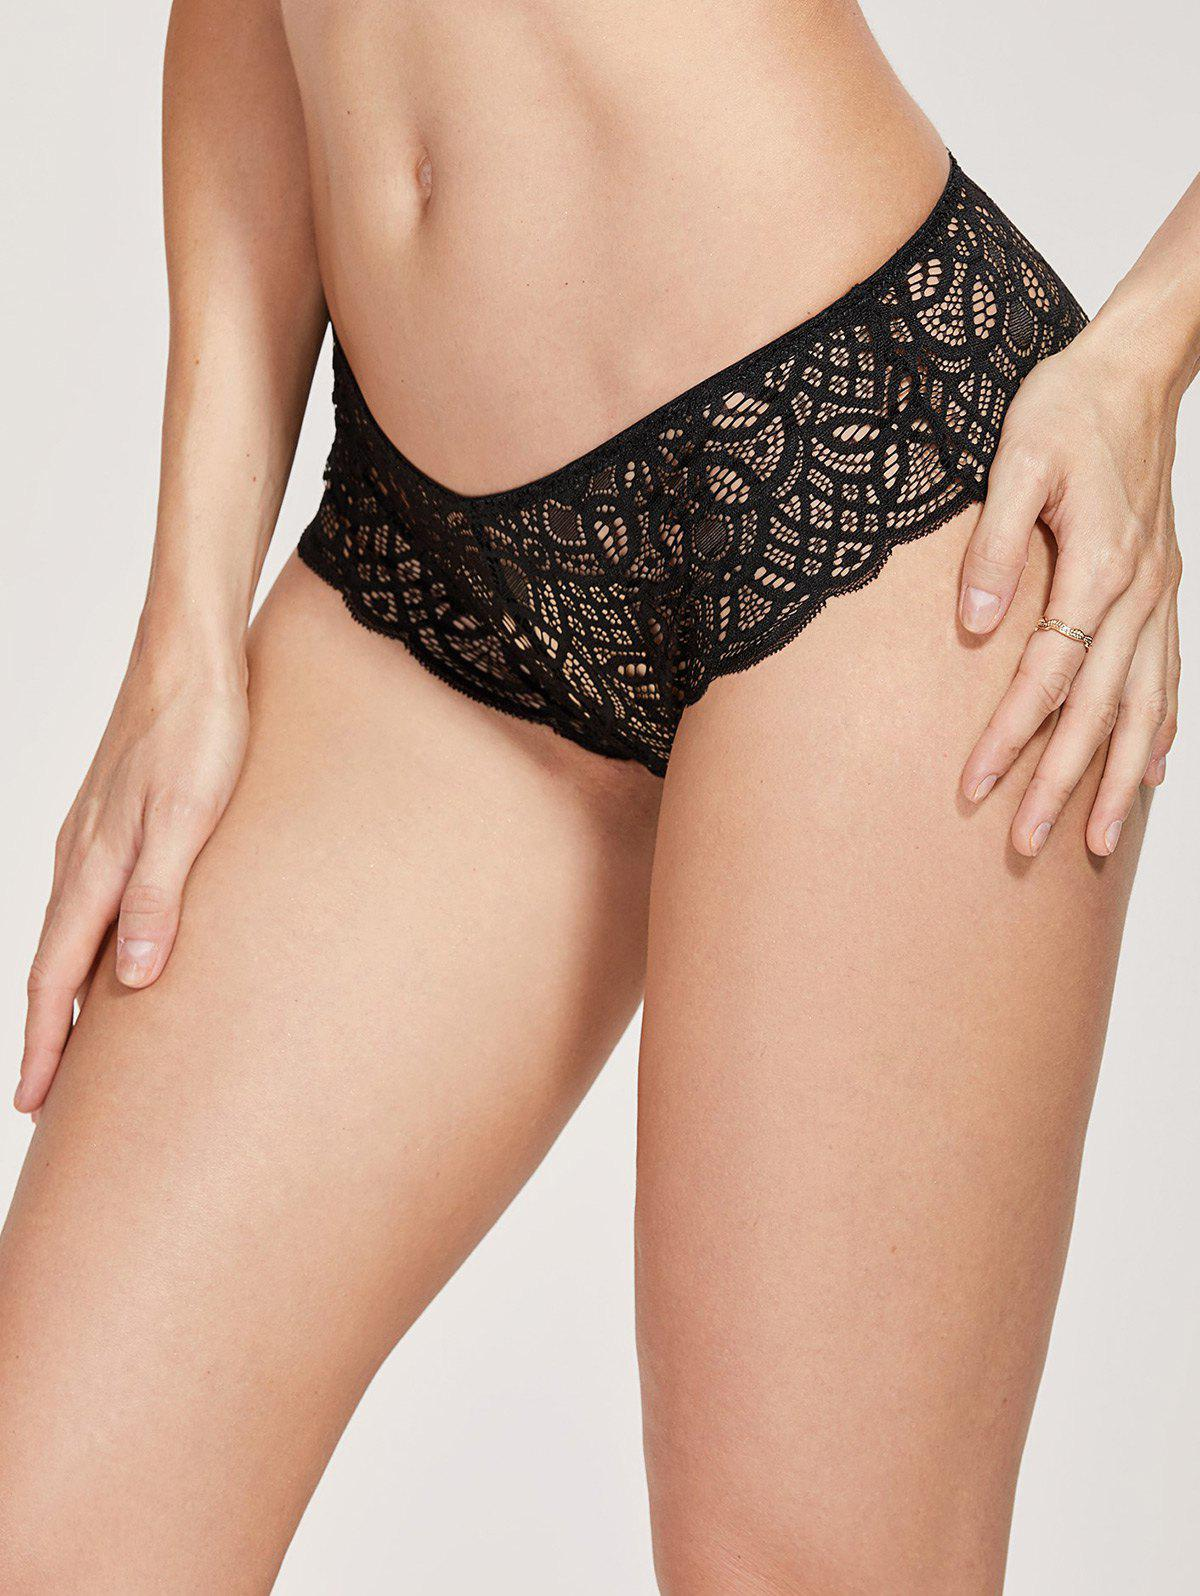 Sale Scalloped See Through Lace Briefs